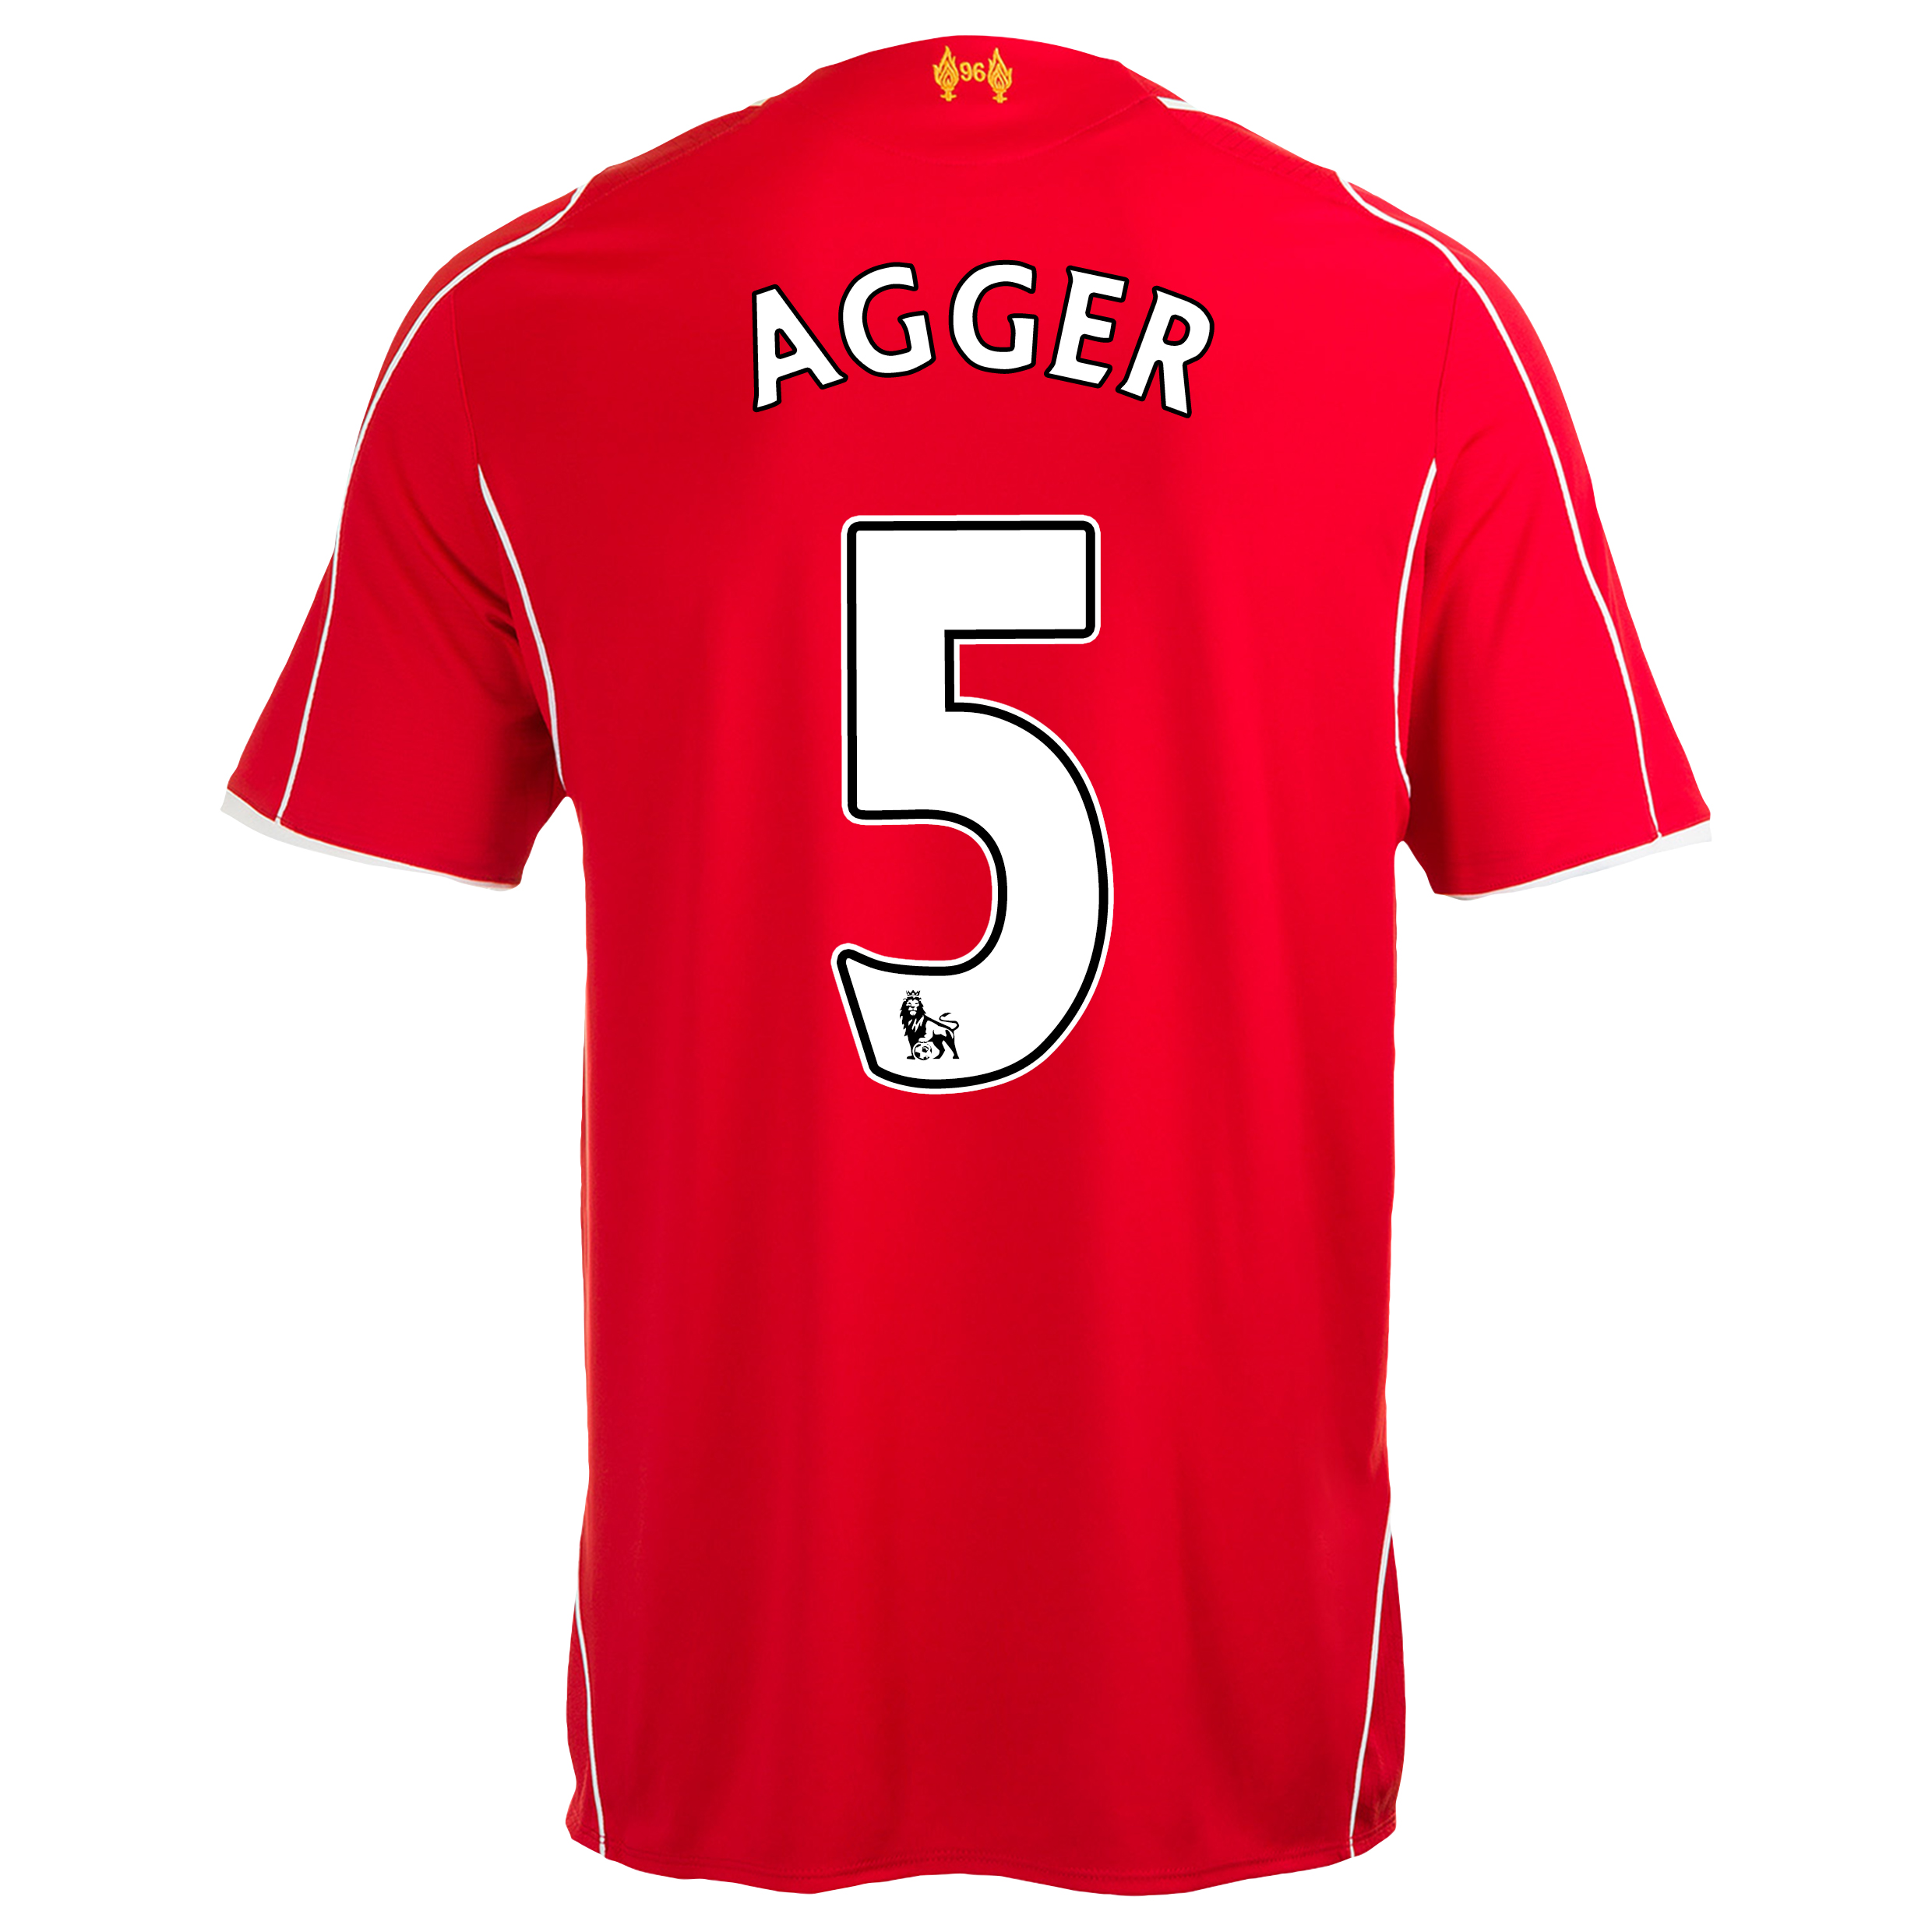 Liverpool Home Shirt 2014/15 Kids Red with Agger 5 printing, Red